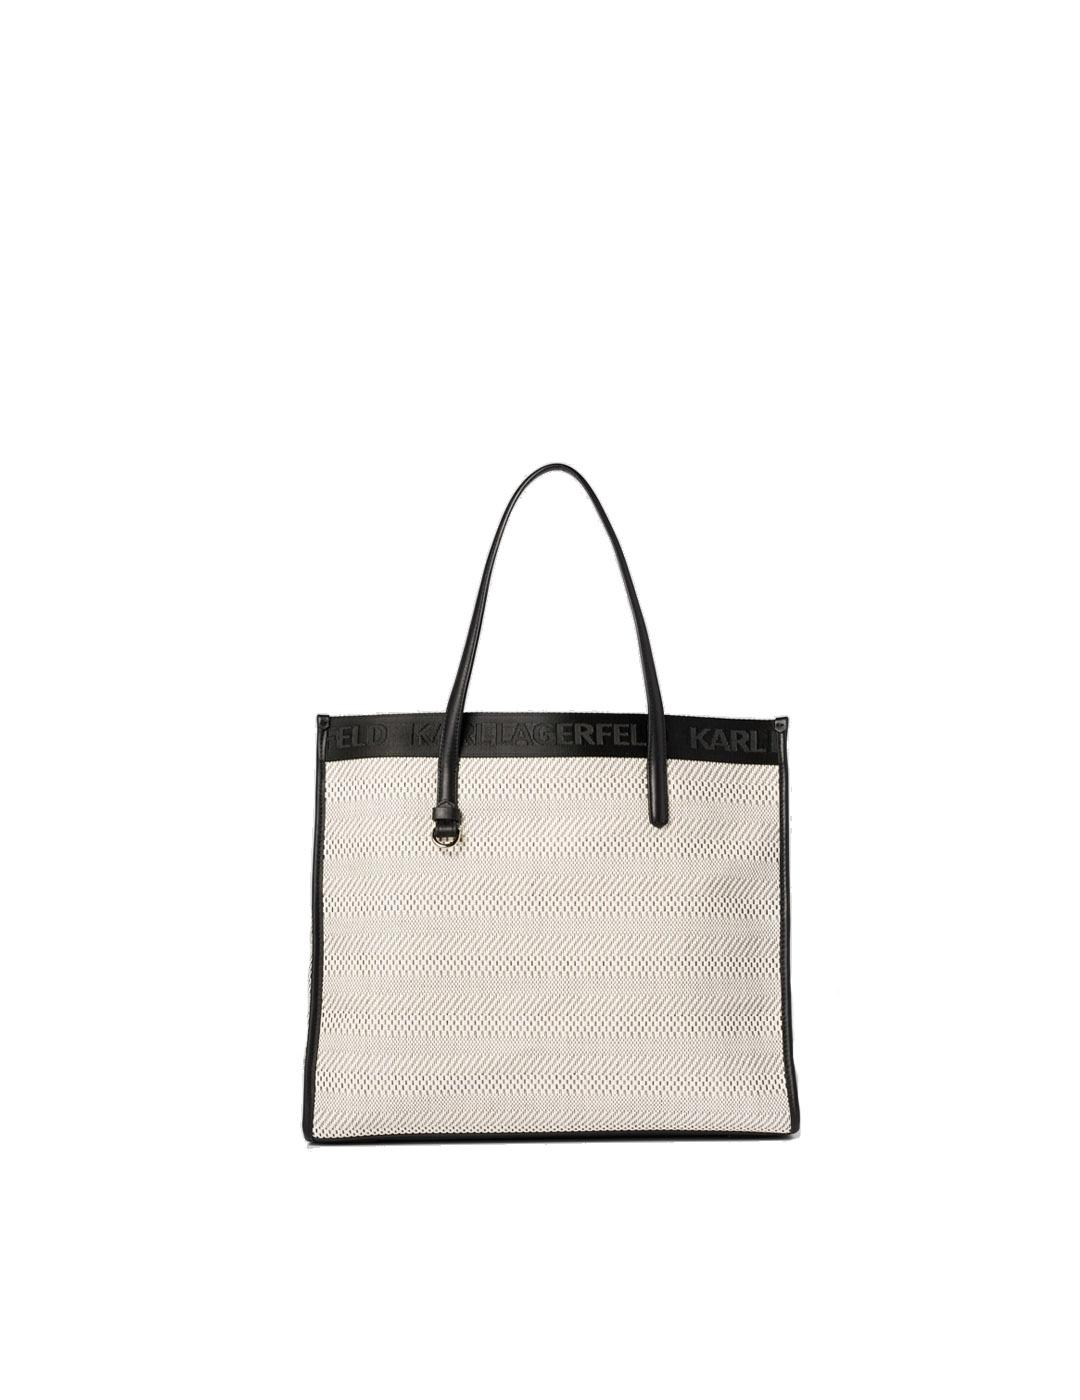 Bolso Karl Lagerfeld blanco K/Skuare Black and White Tote